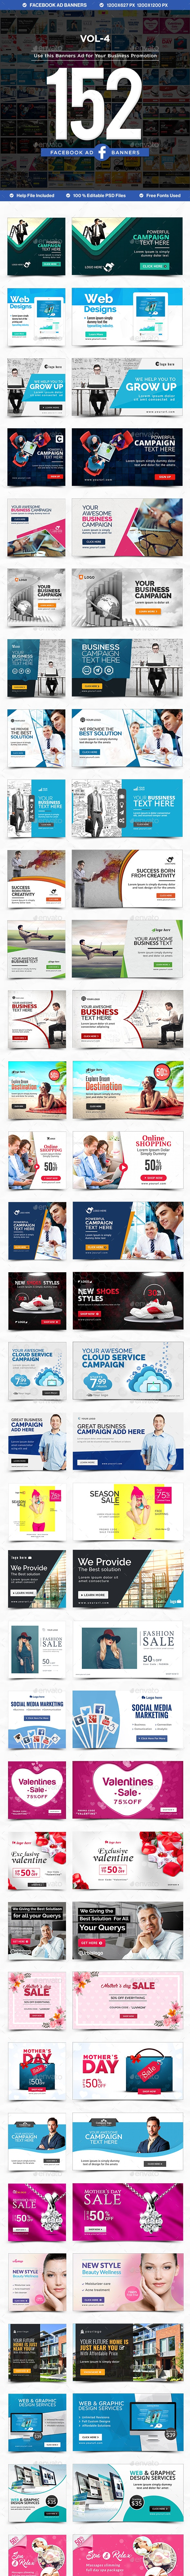 Facebook Newsfeed Ad Banners Vol-4 - 152 Banners - Miscellaneous Social Media